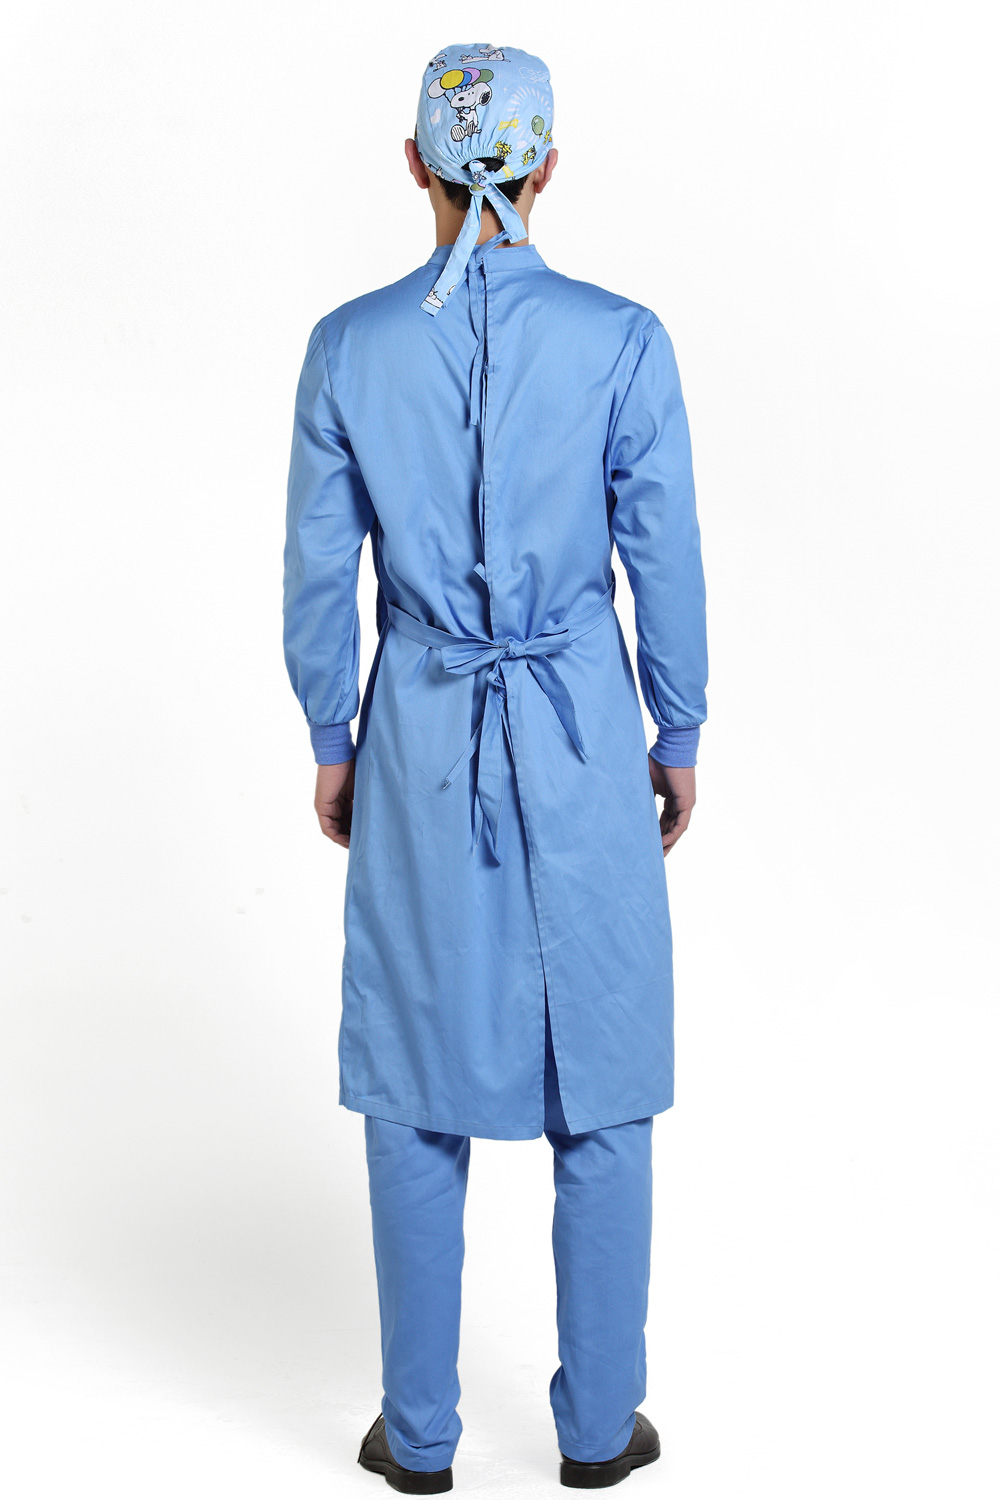 2015 OEM surgical clothing surgical uniform surgical gowns medical ...